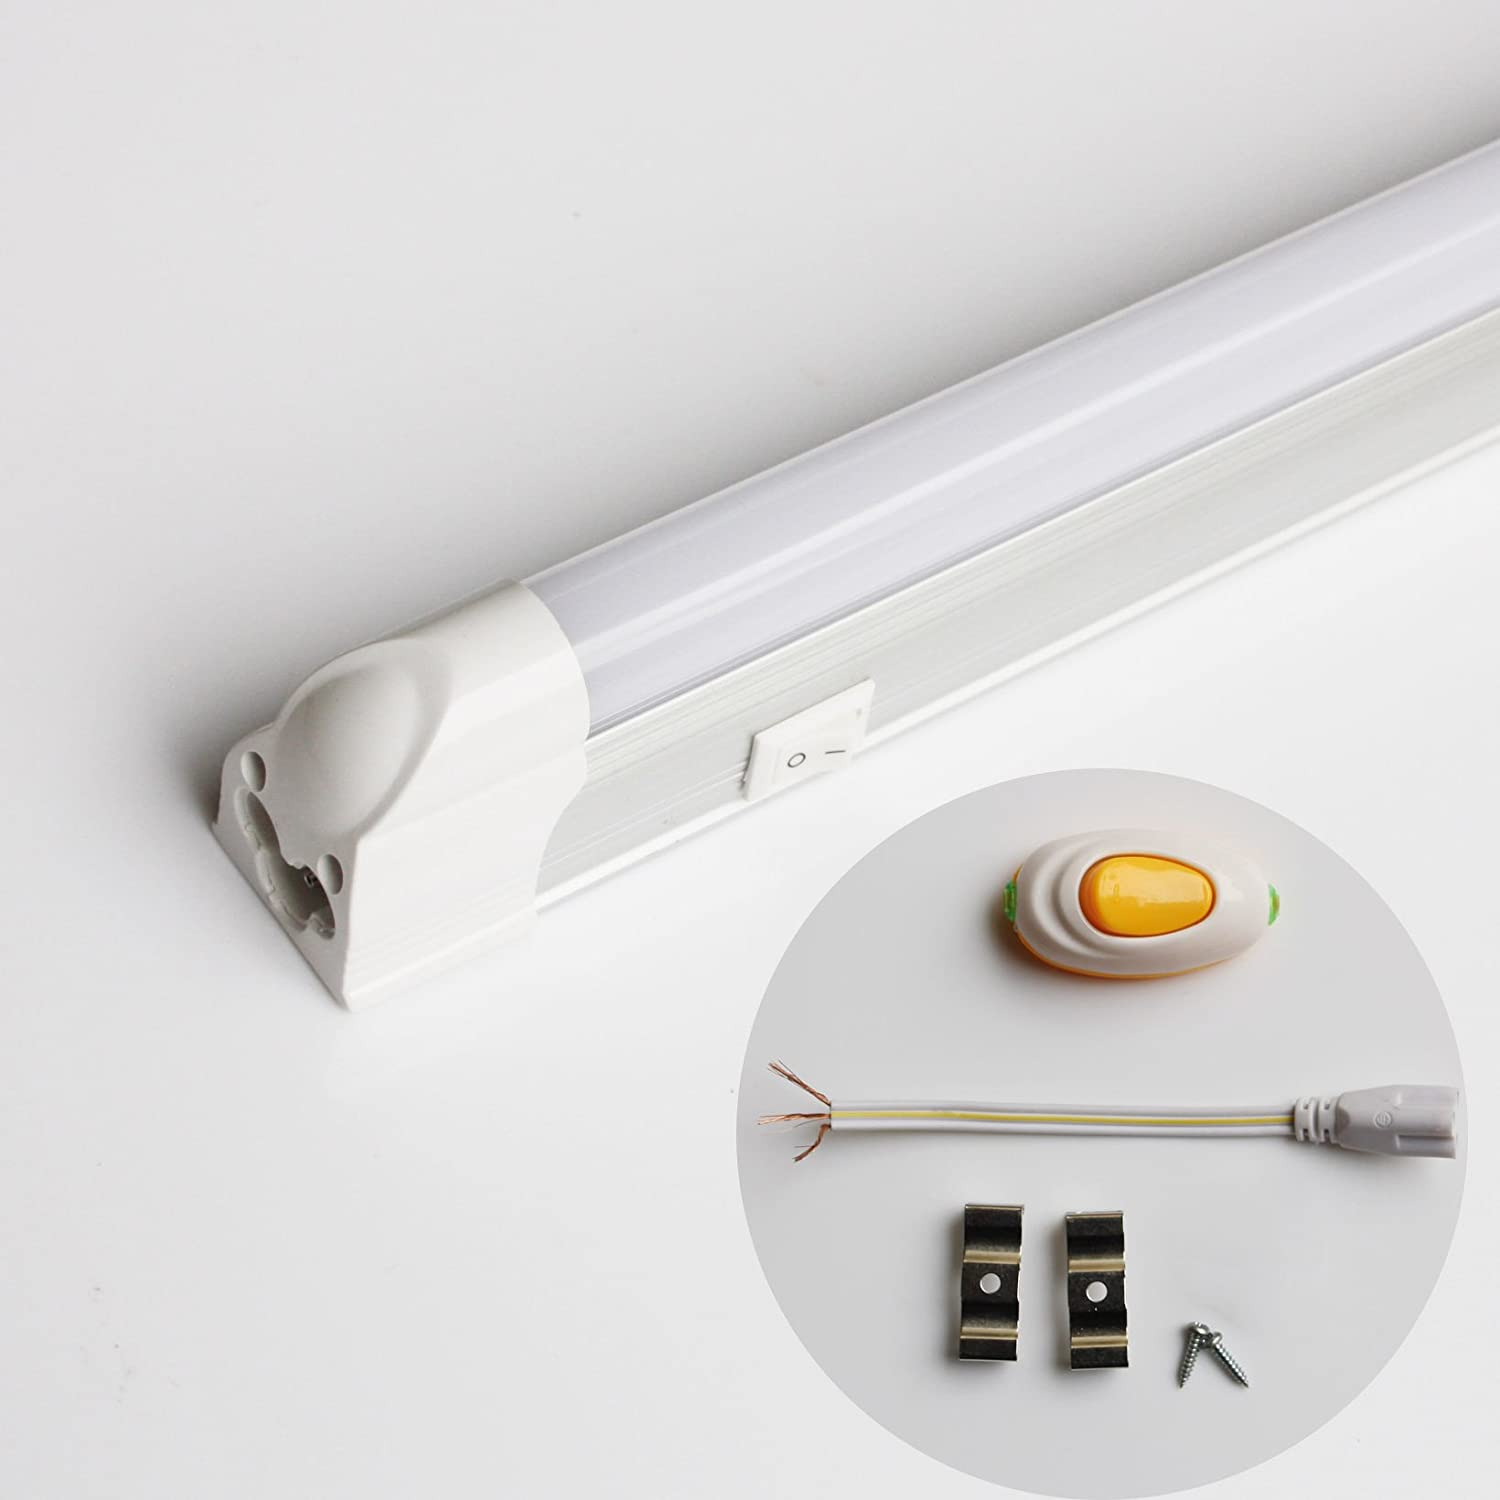 BYOPTO 1 Pcs T5 Integrated LED Fluorescent Replacement Tube with build in switch on shell(60cm+Power switch,Cool White 6000k-6500k)